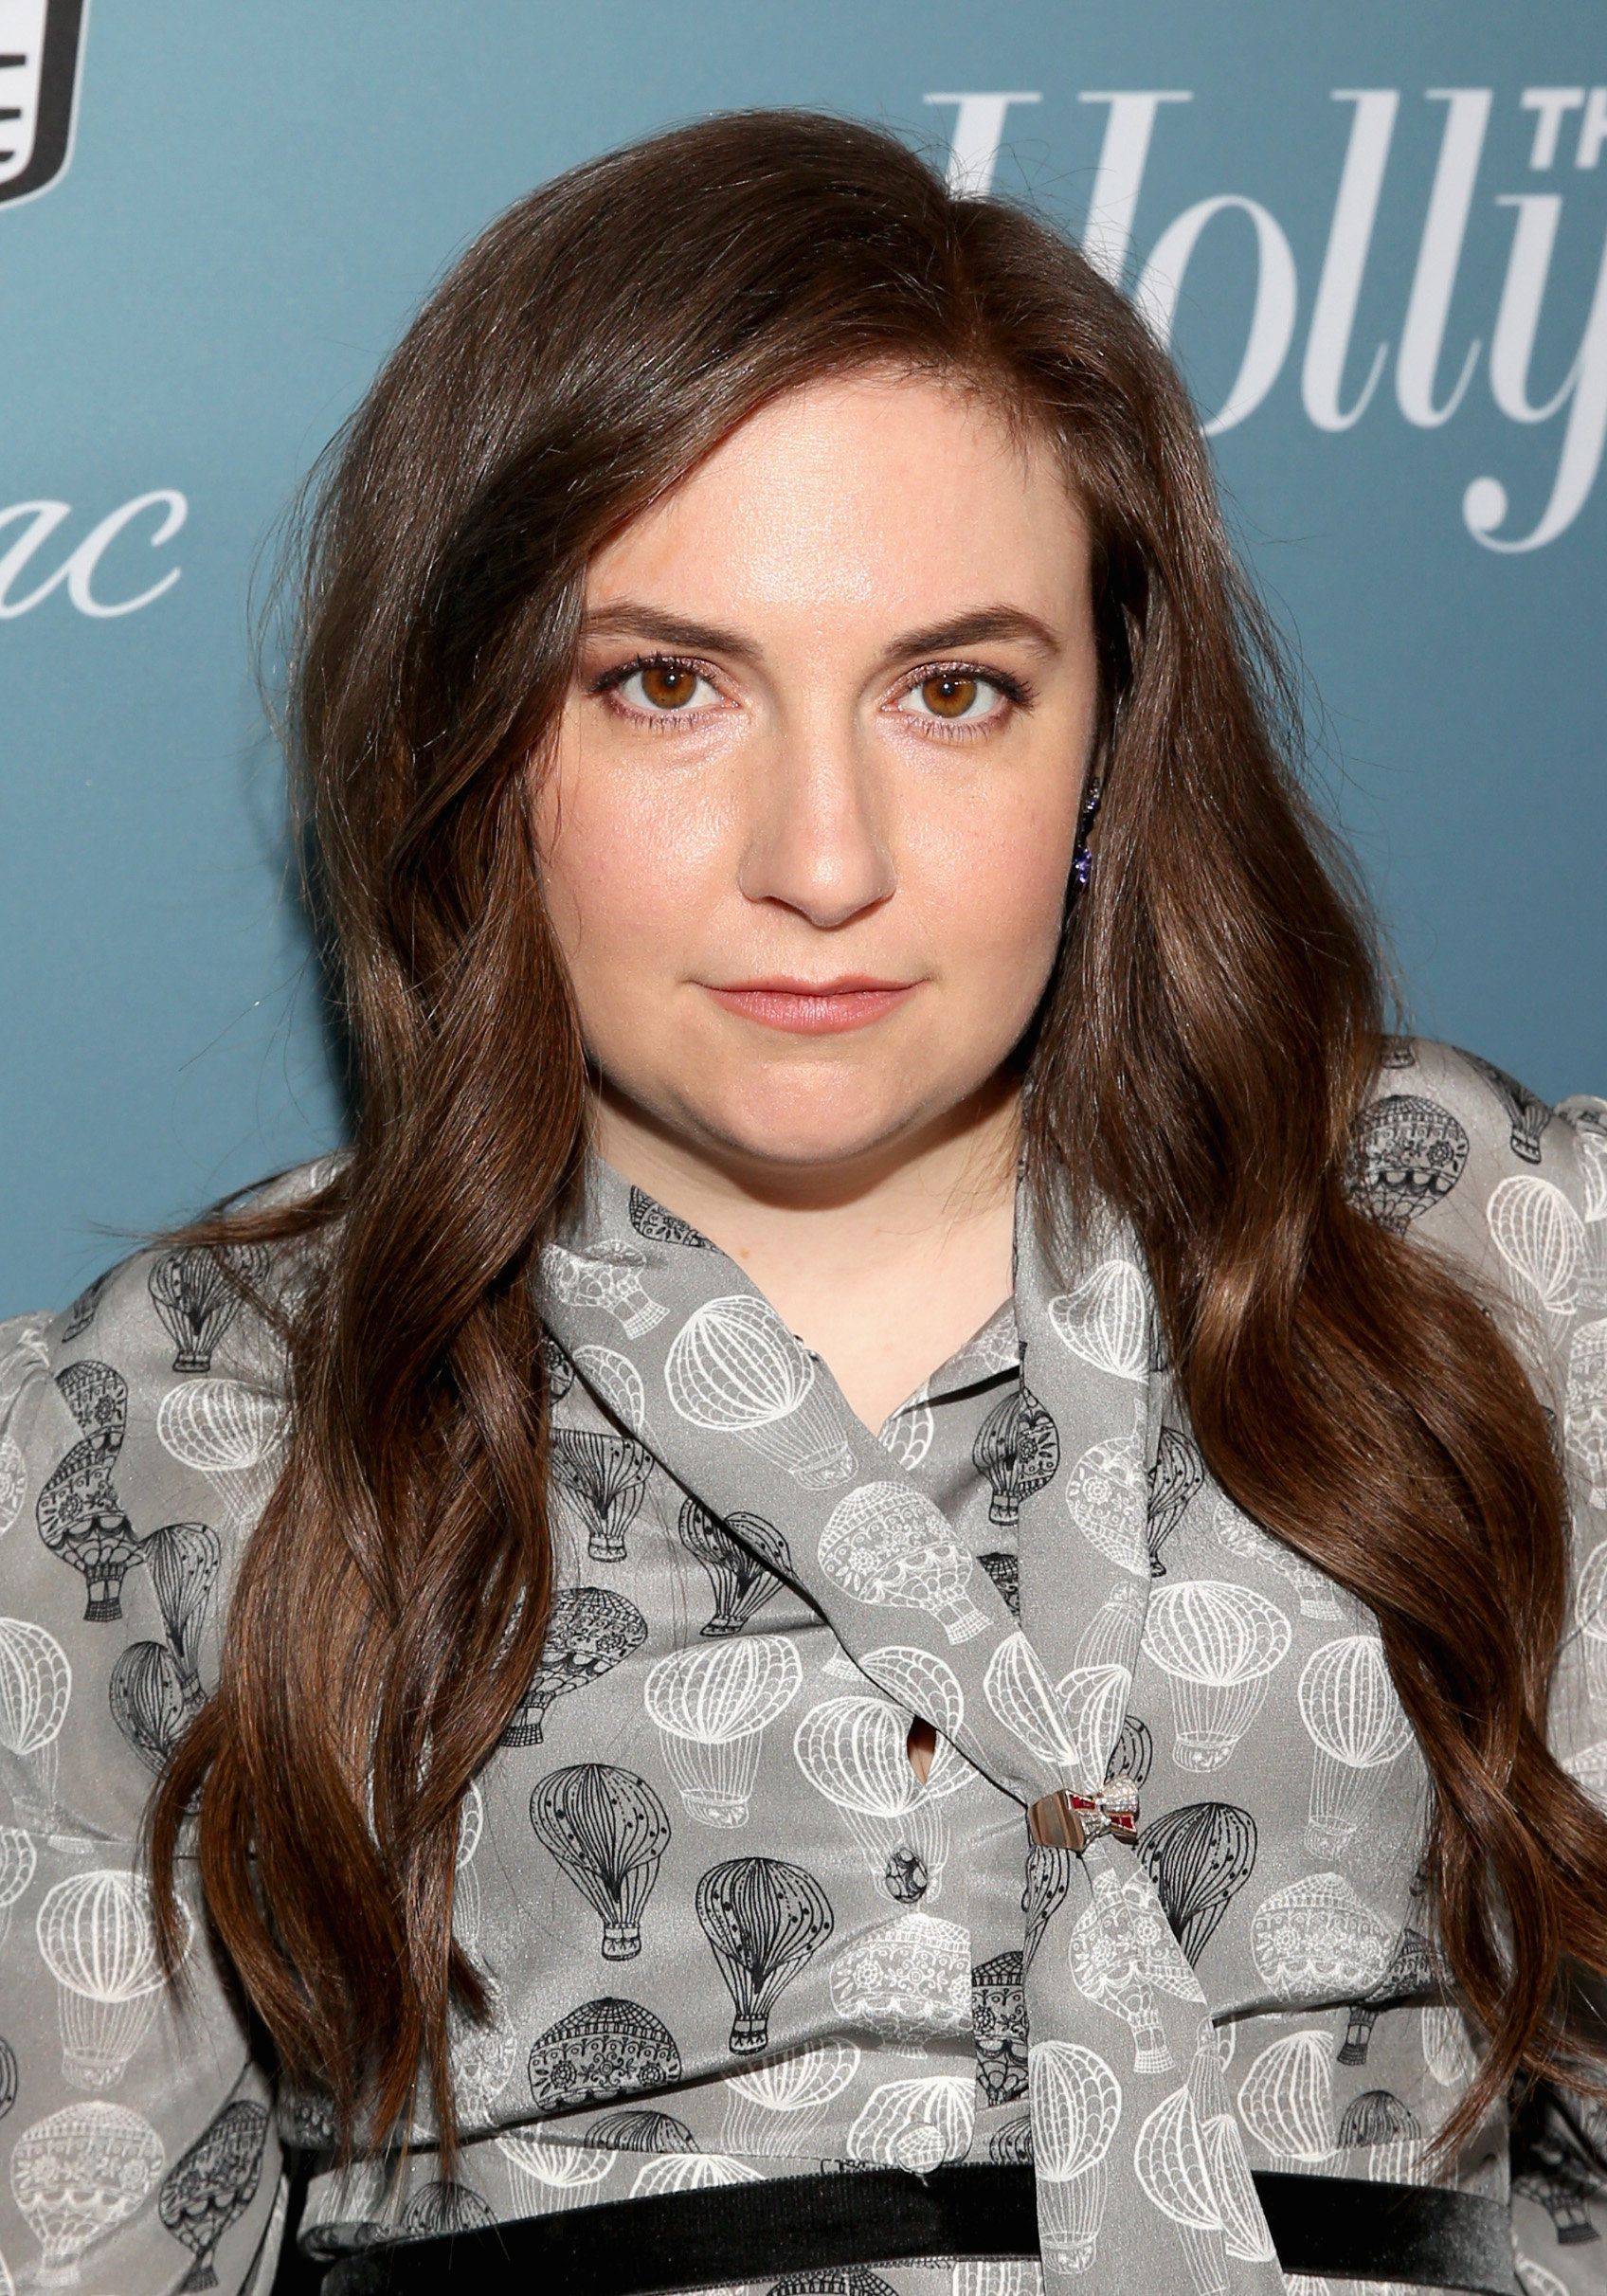 LOS ANGELES, CA - DECEMBER 05:  Lena Dunham attends The Hollywood Reporter's Power 100 Women In Entertainment at Milk Studios on December 5, 2018 in Los Angeles, California.  (Photo by Jesse Grant/Getty Images for The Hollywood Reporter )